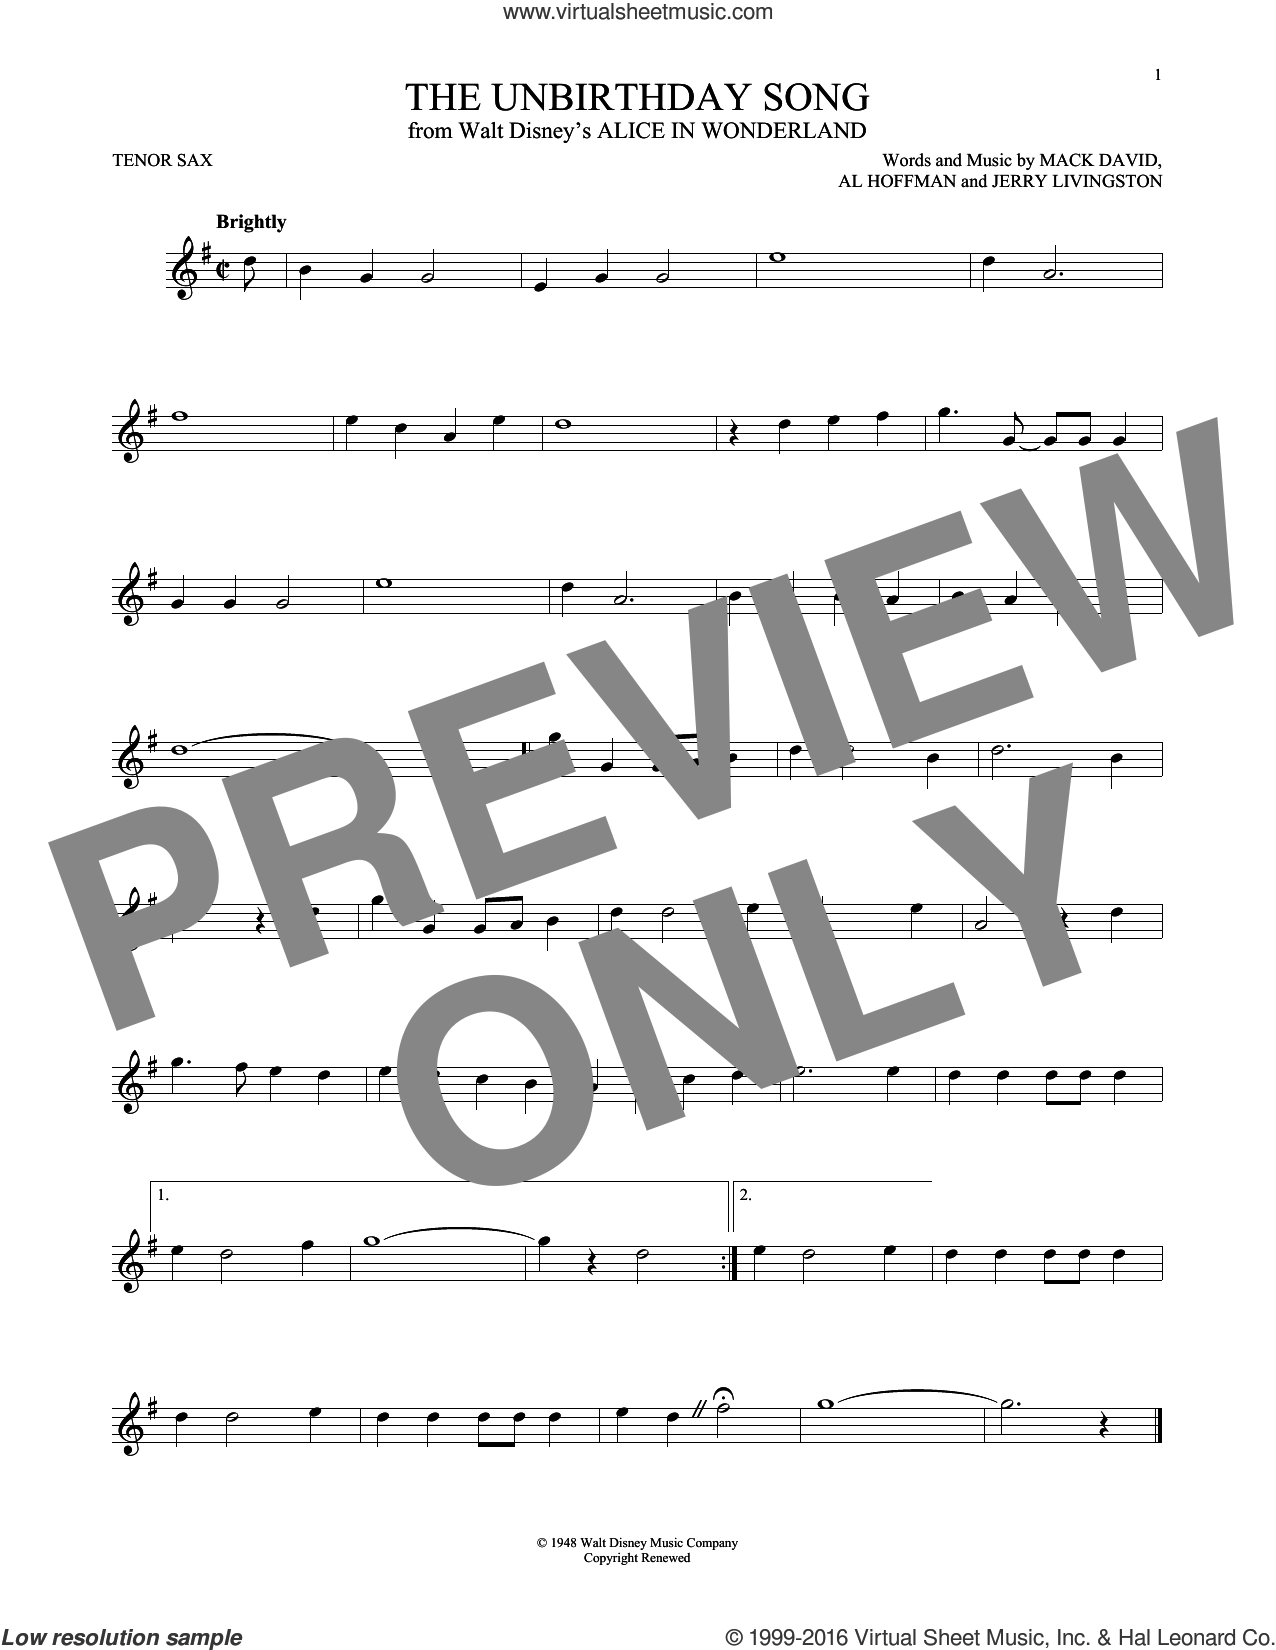 The Unbirthday Song (from Disney's Alice In Wonderland) sheet music for tenor saxophone solo by Al Hoffman, Jerry Livingston, Mack David and Mack David, Al Hoffman and Jerry Livingston, intermediate skill level